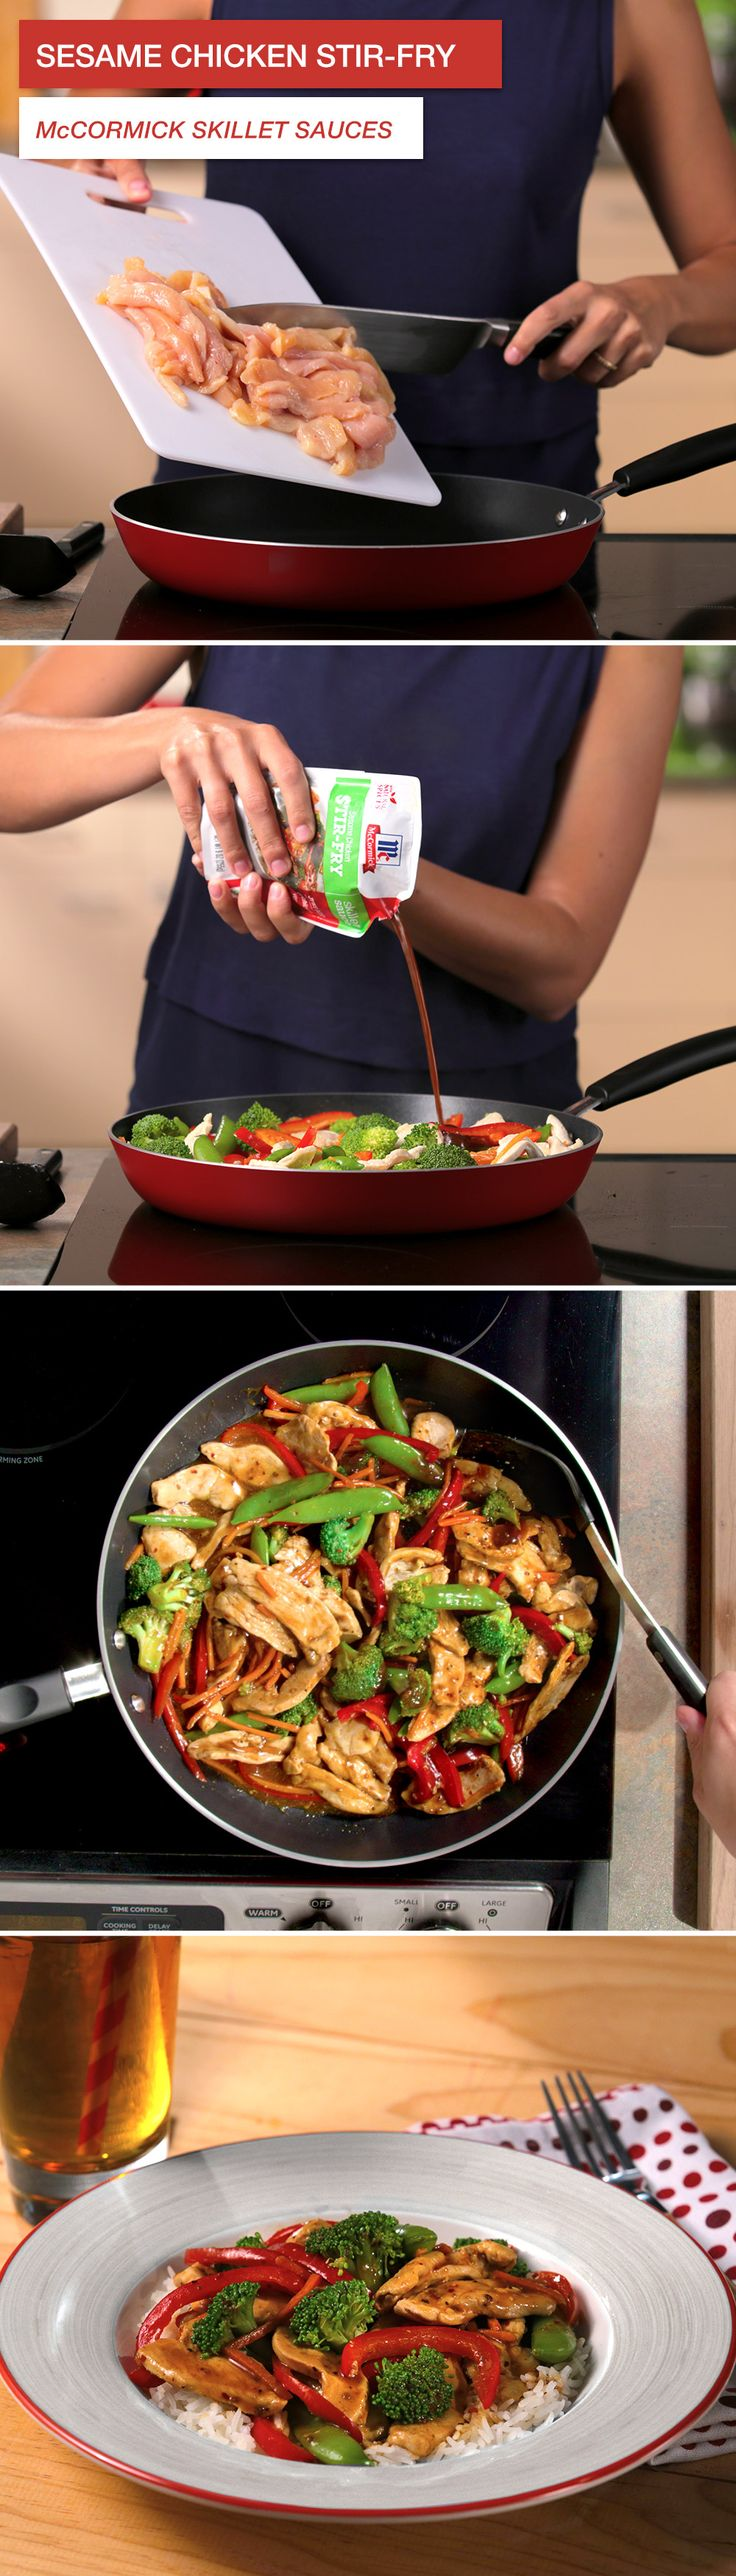 In need of dinner inspiration? This Sesame Chicken Stir Fry is ready in only 15 minutes with McCormick Skillet Sauces. They're full of natural spices—and free of MSG and artificial flavors—because pure tastes better. Click through for recipe details!